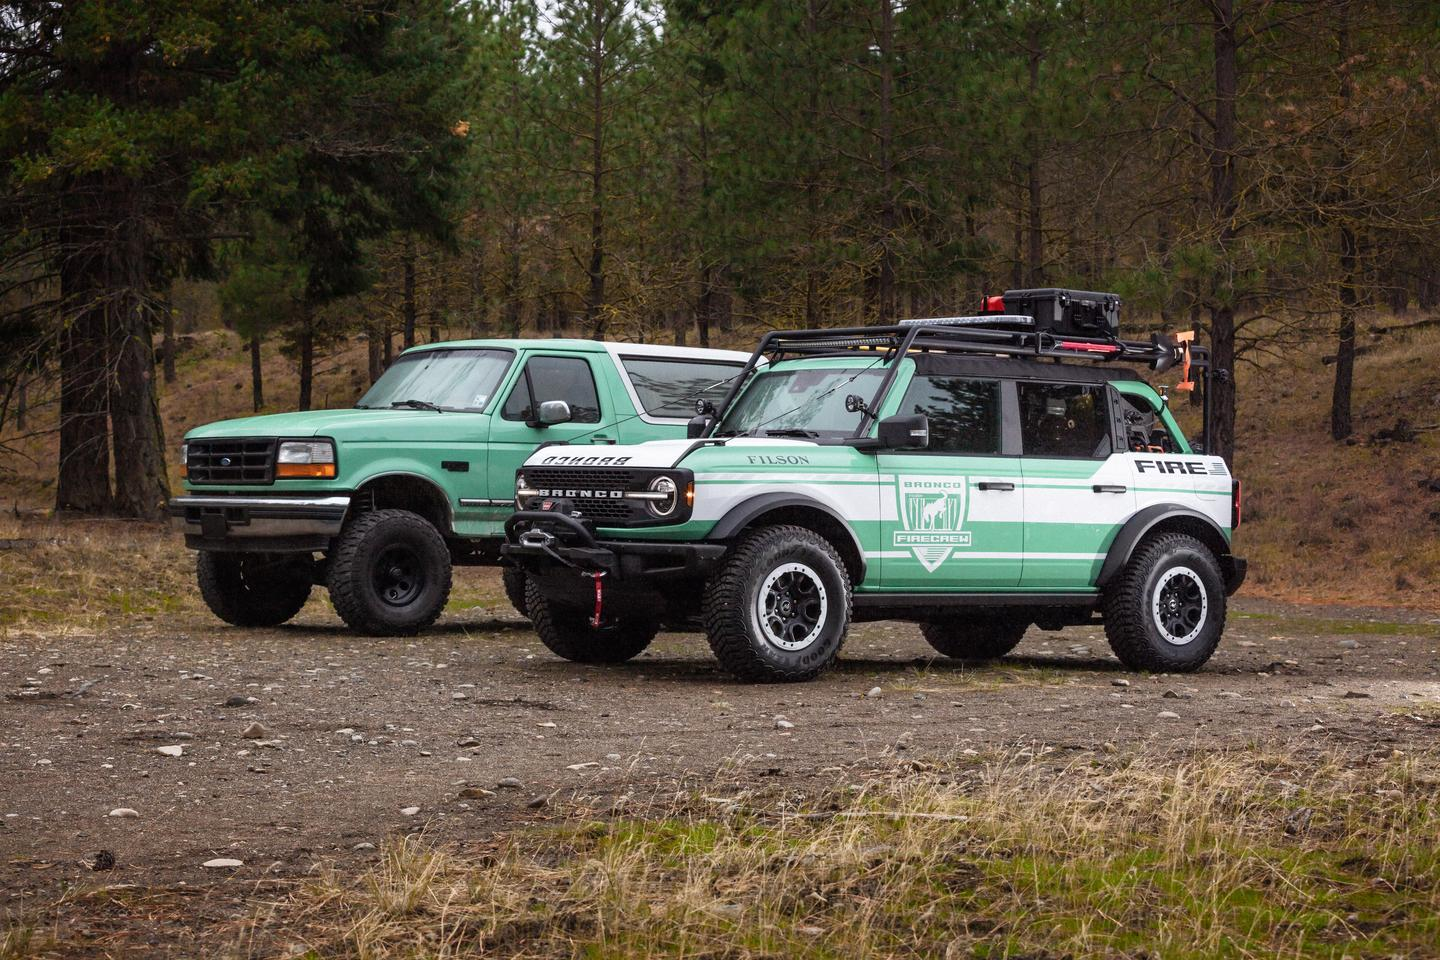 The look and design of the new Bronco Wildland Fire Rig is inspired by USFS Broncos of the past